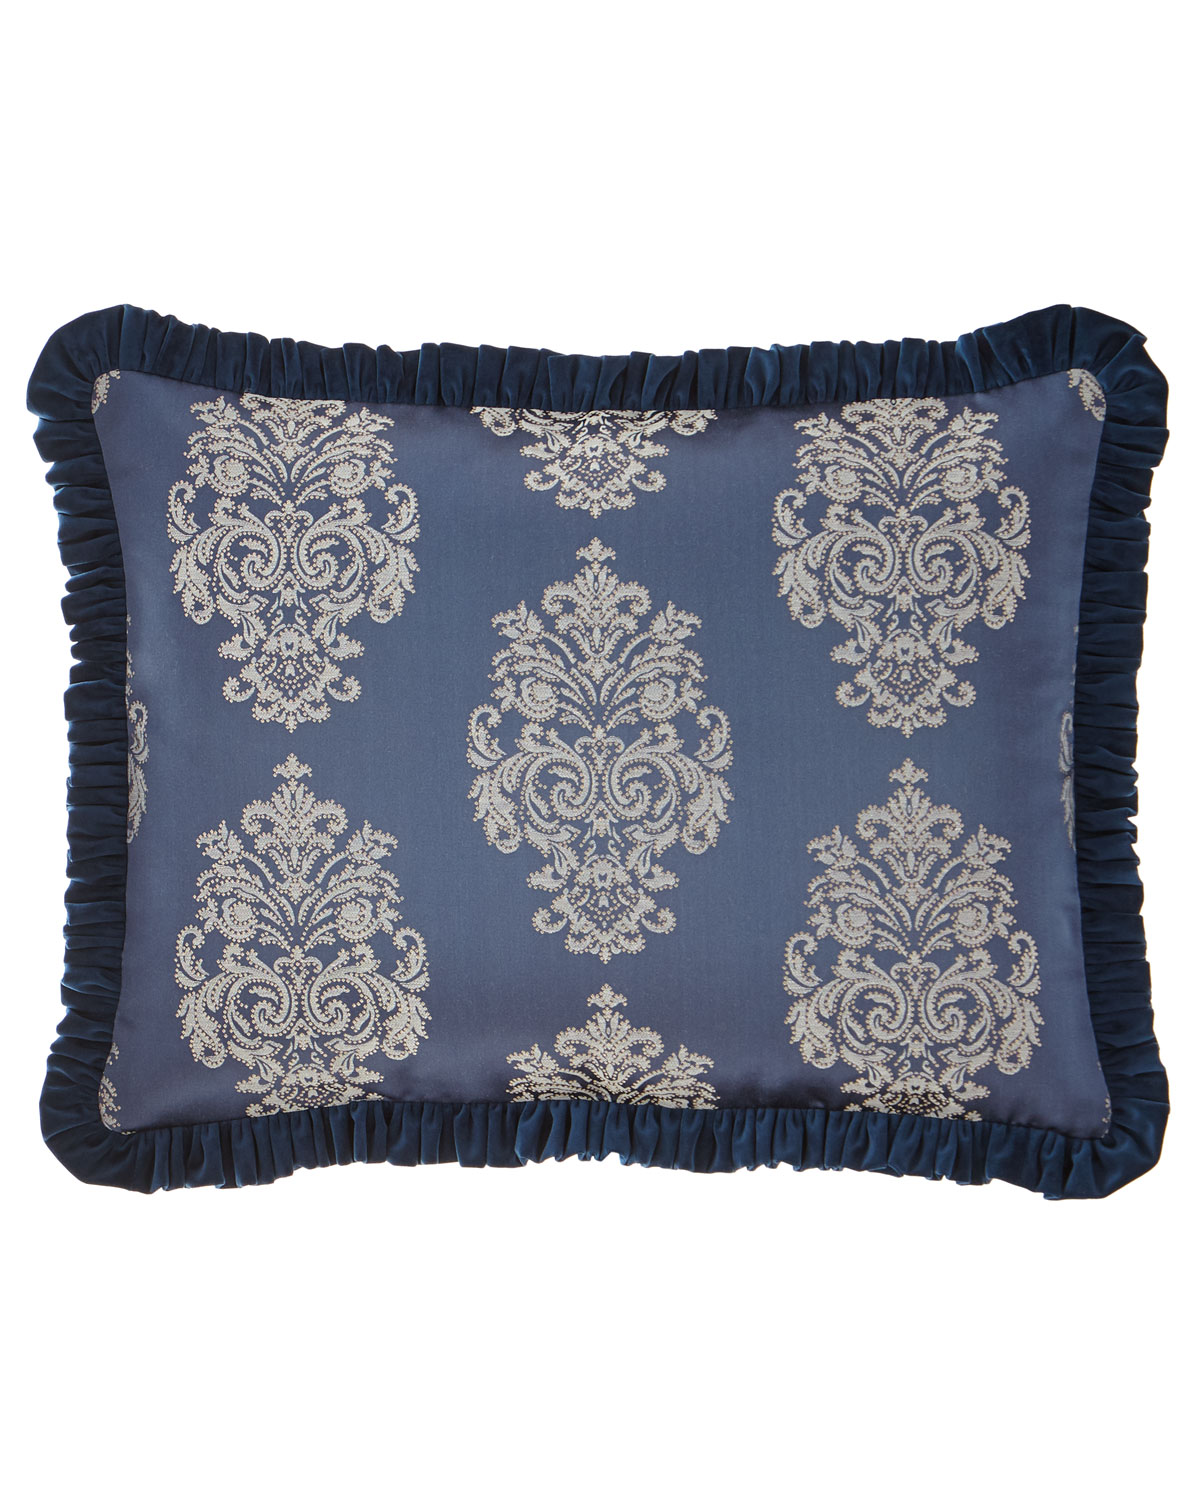 Dian Austin Couture Home Belle Damask King Sham